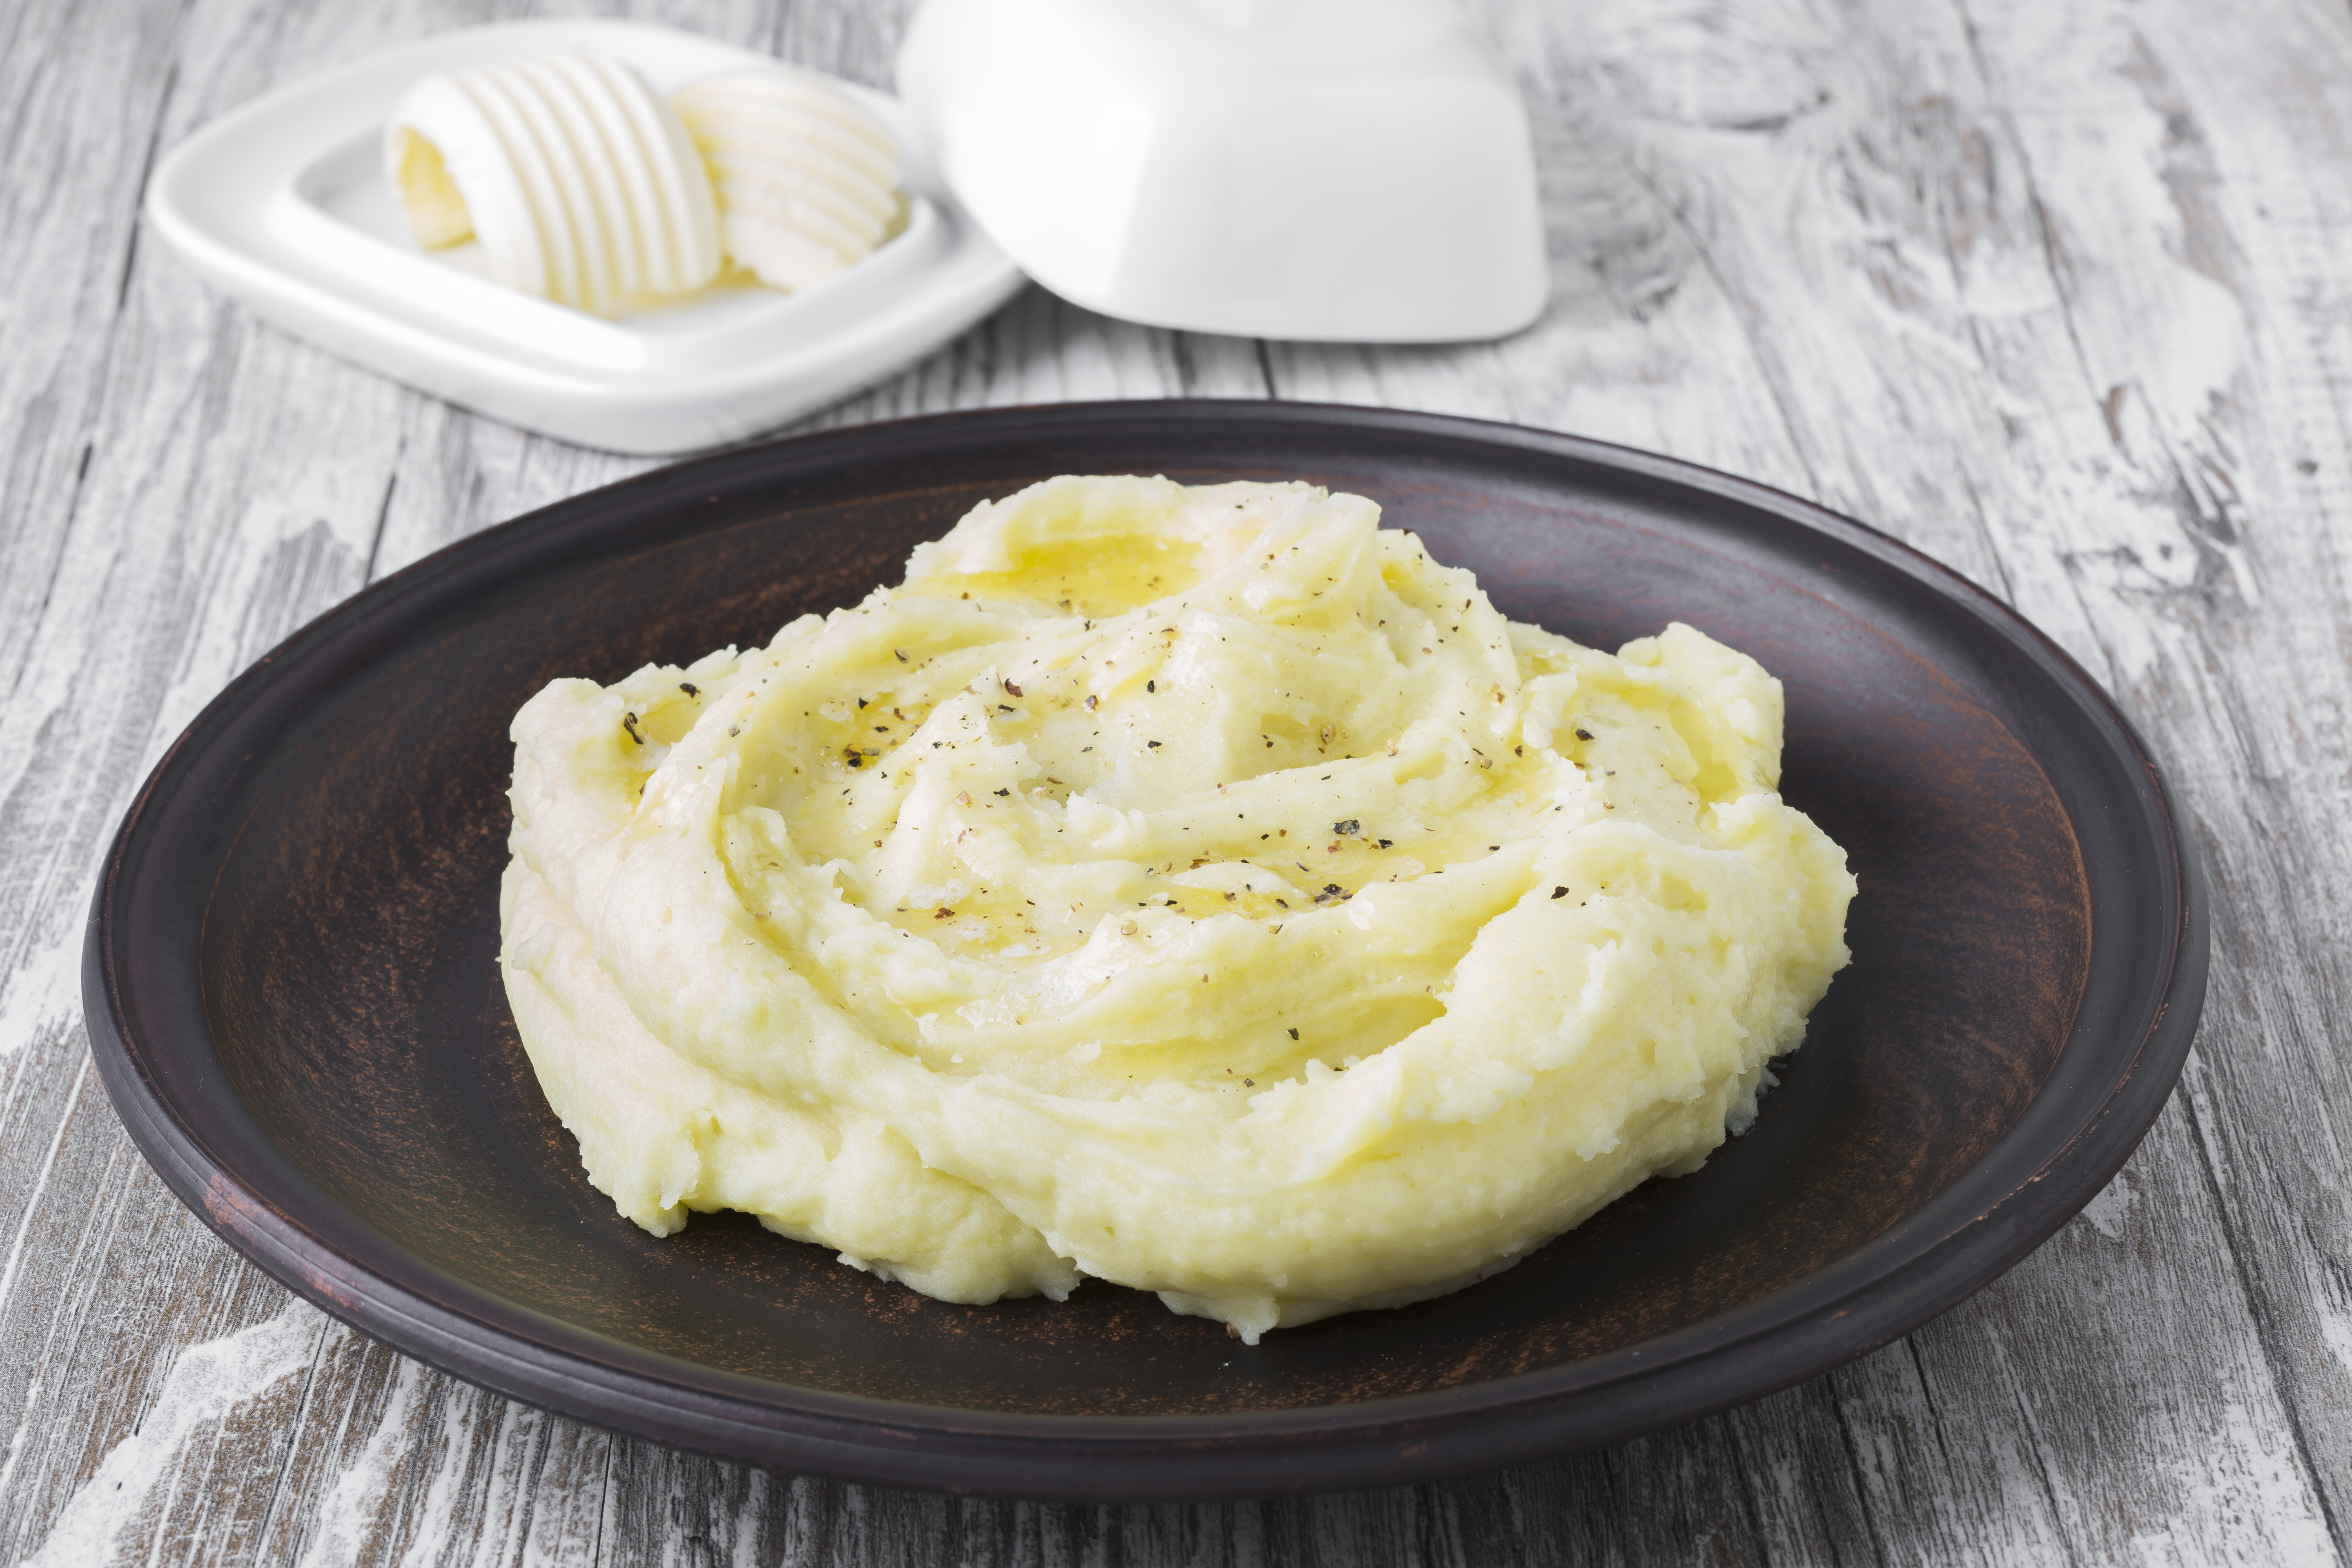 Mashed Parsnip and Potatoes - Produce Made Simple